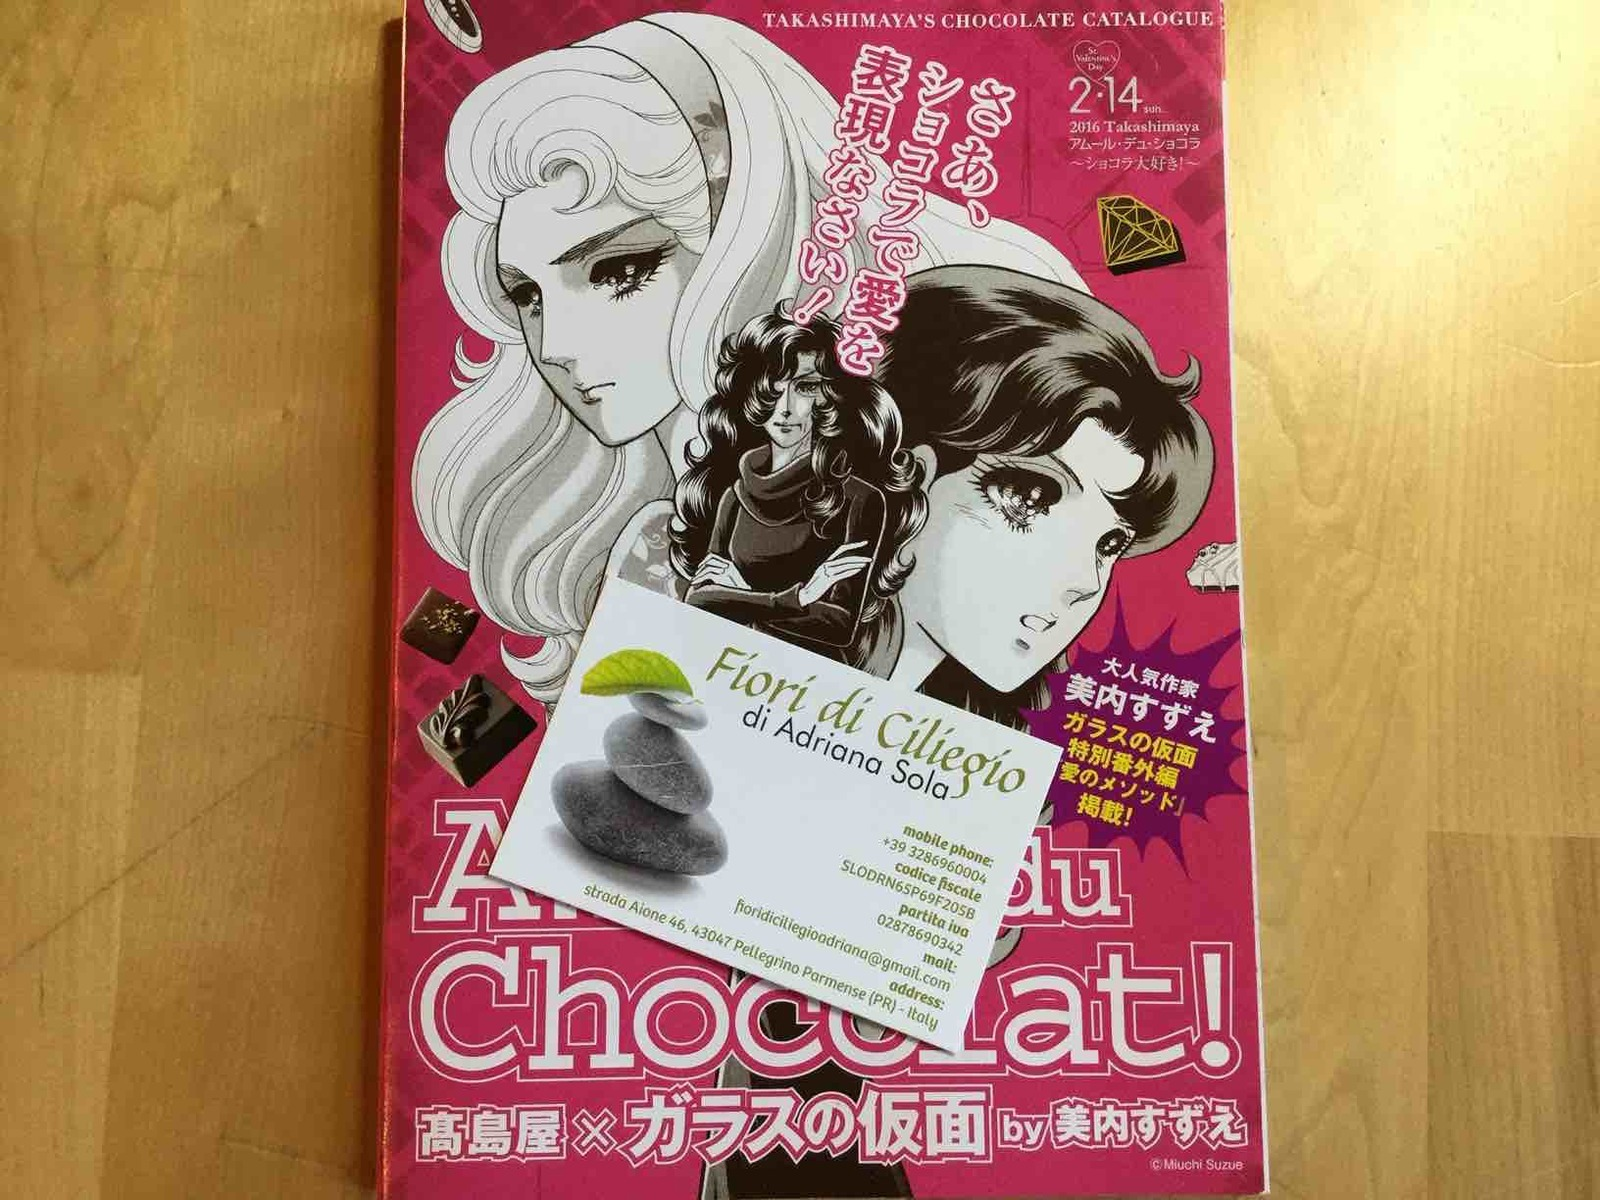 Glass no kamen chocolat eventpg.jpg